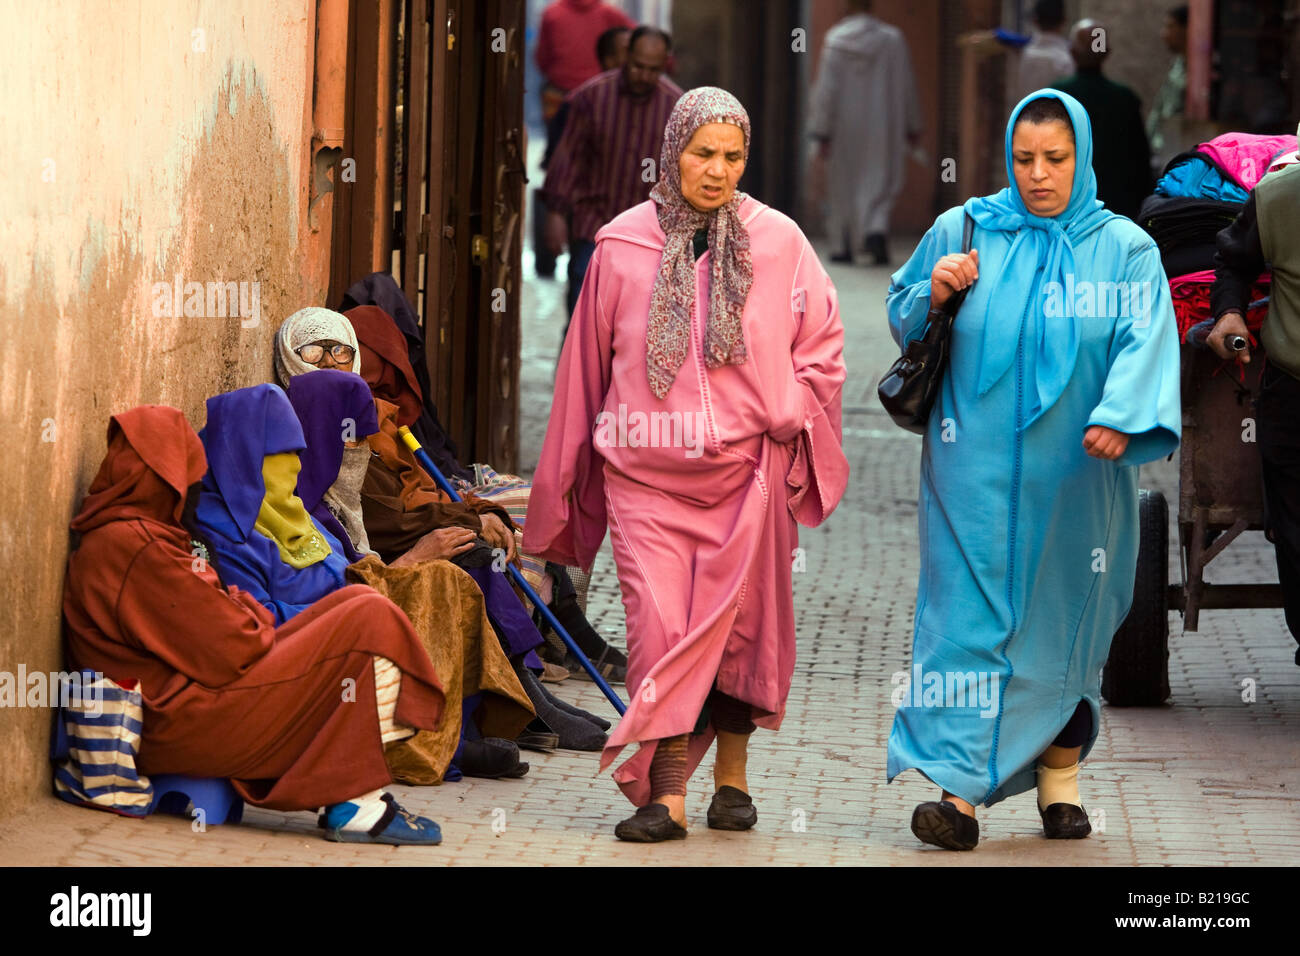 b1aeac73467 Marrakech Moroccan women in traditional dress walking in the old town